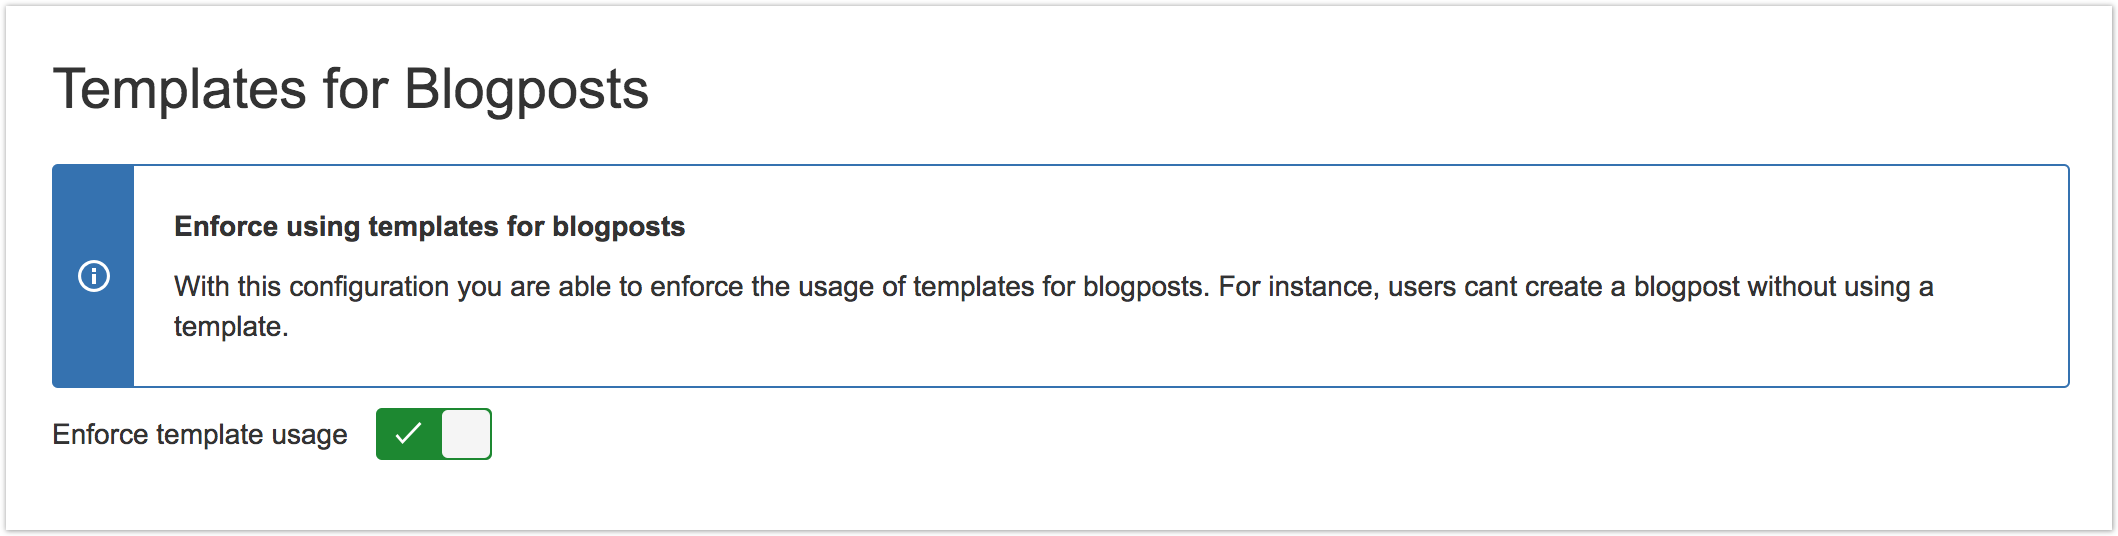 confluence blog post template - enforce using templates for blog posts templates for